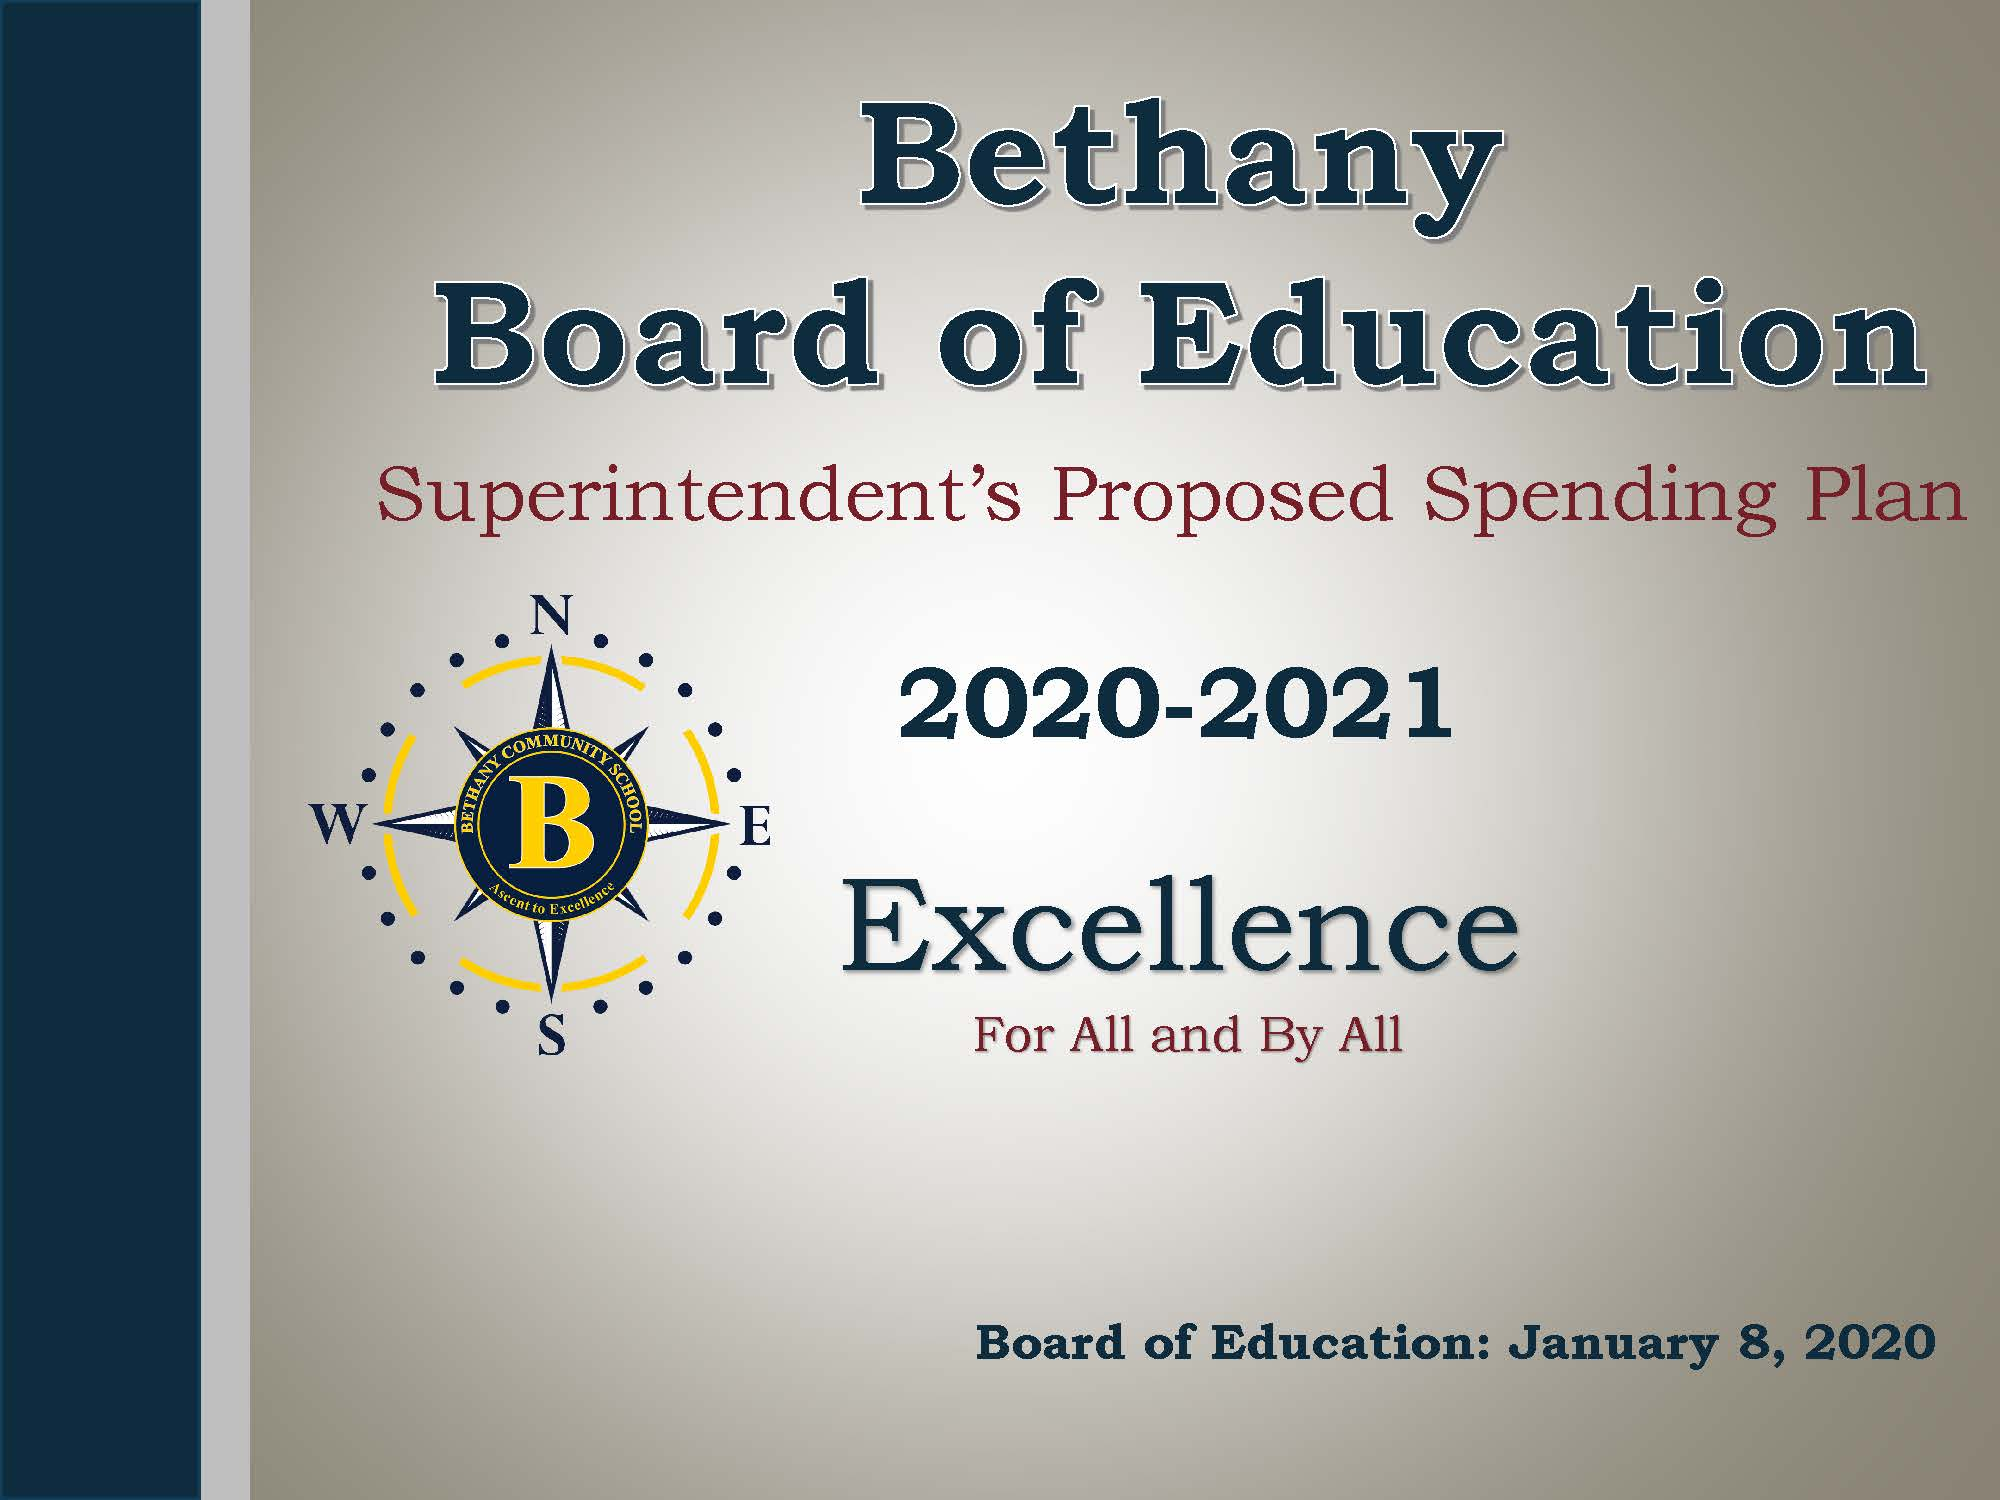 Image of the first slide of the Superintendent's Proposed Spending Plan